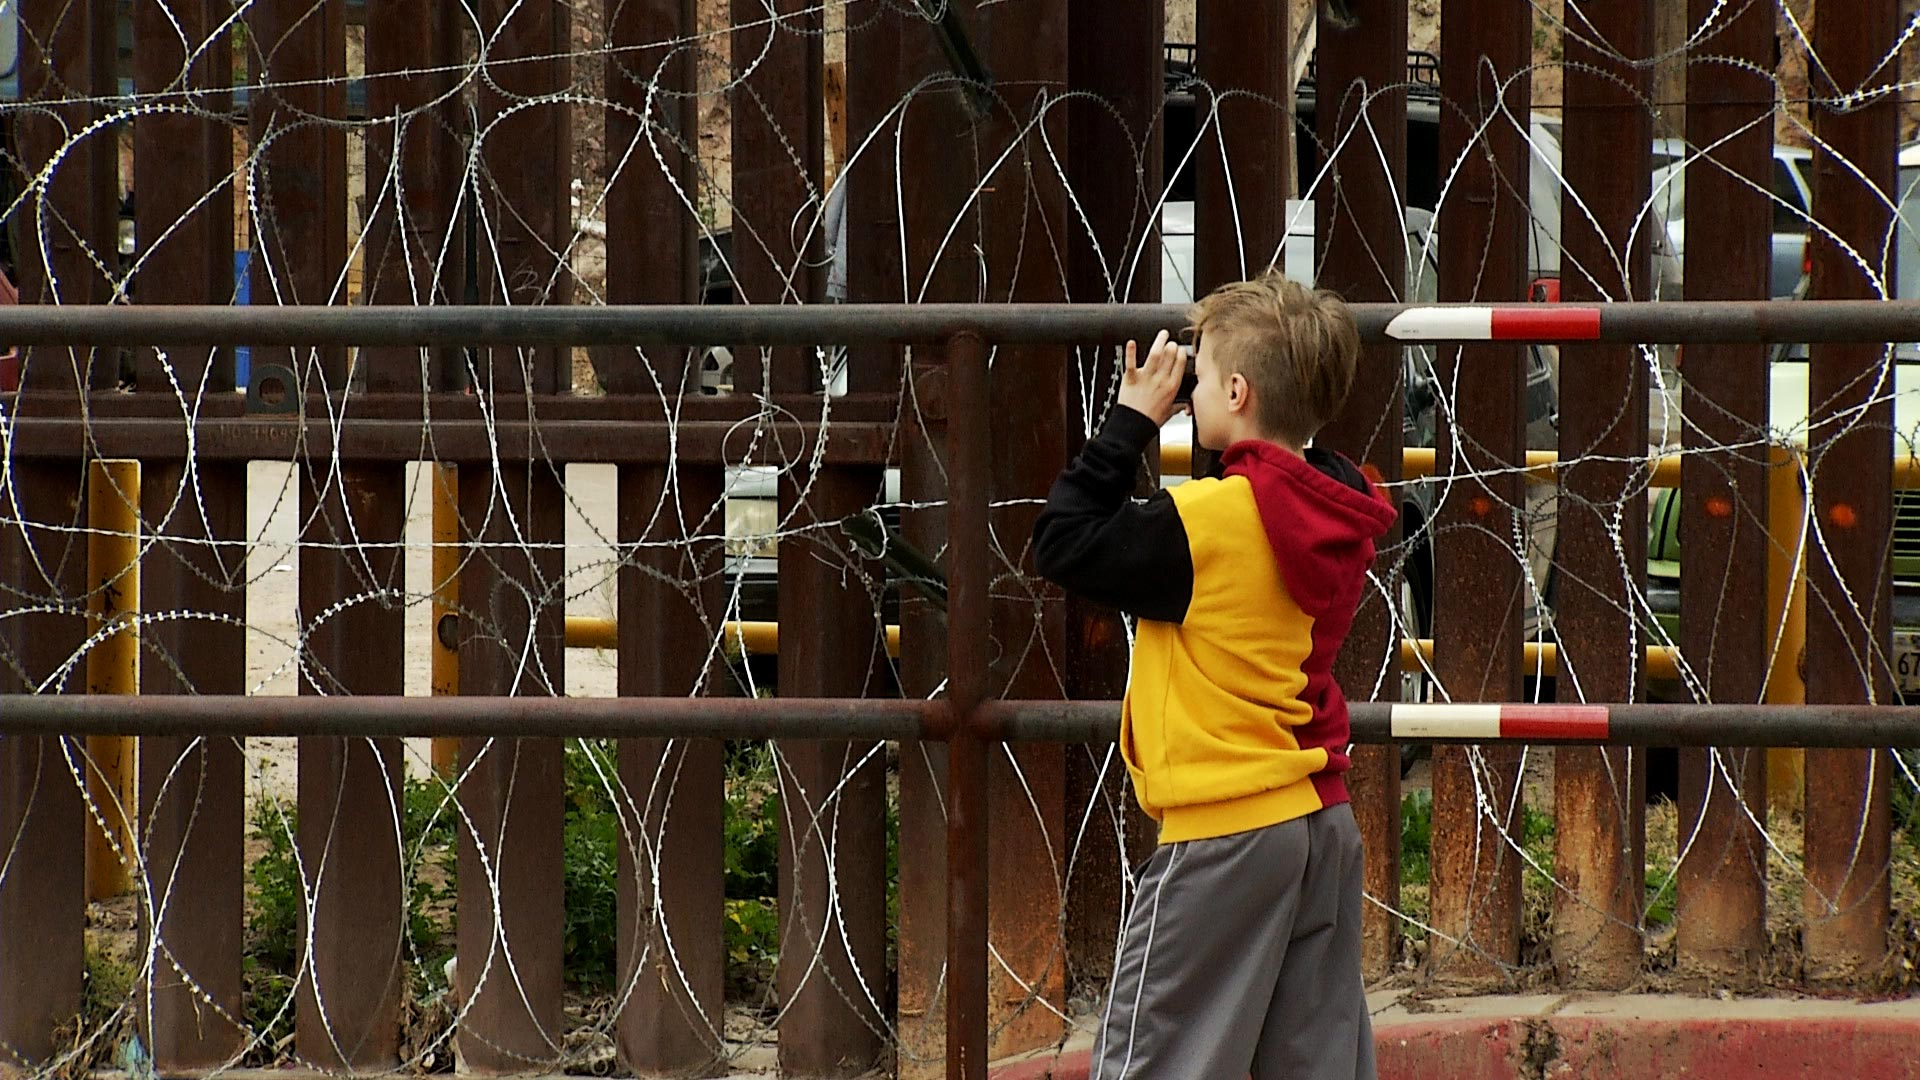 Willa Perry-Spears, 10, photographs the wall along the international line in Nogales, Arizona on February 18, 2019. It was her first time at the border.